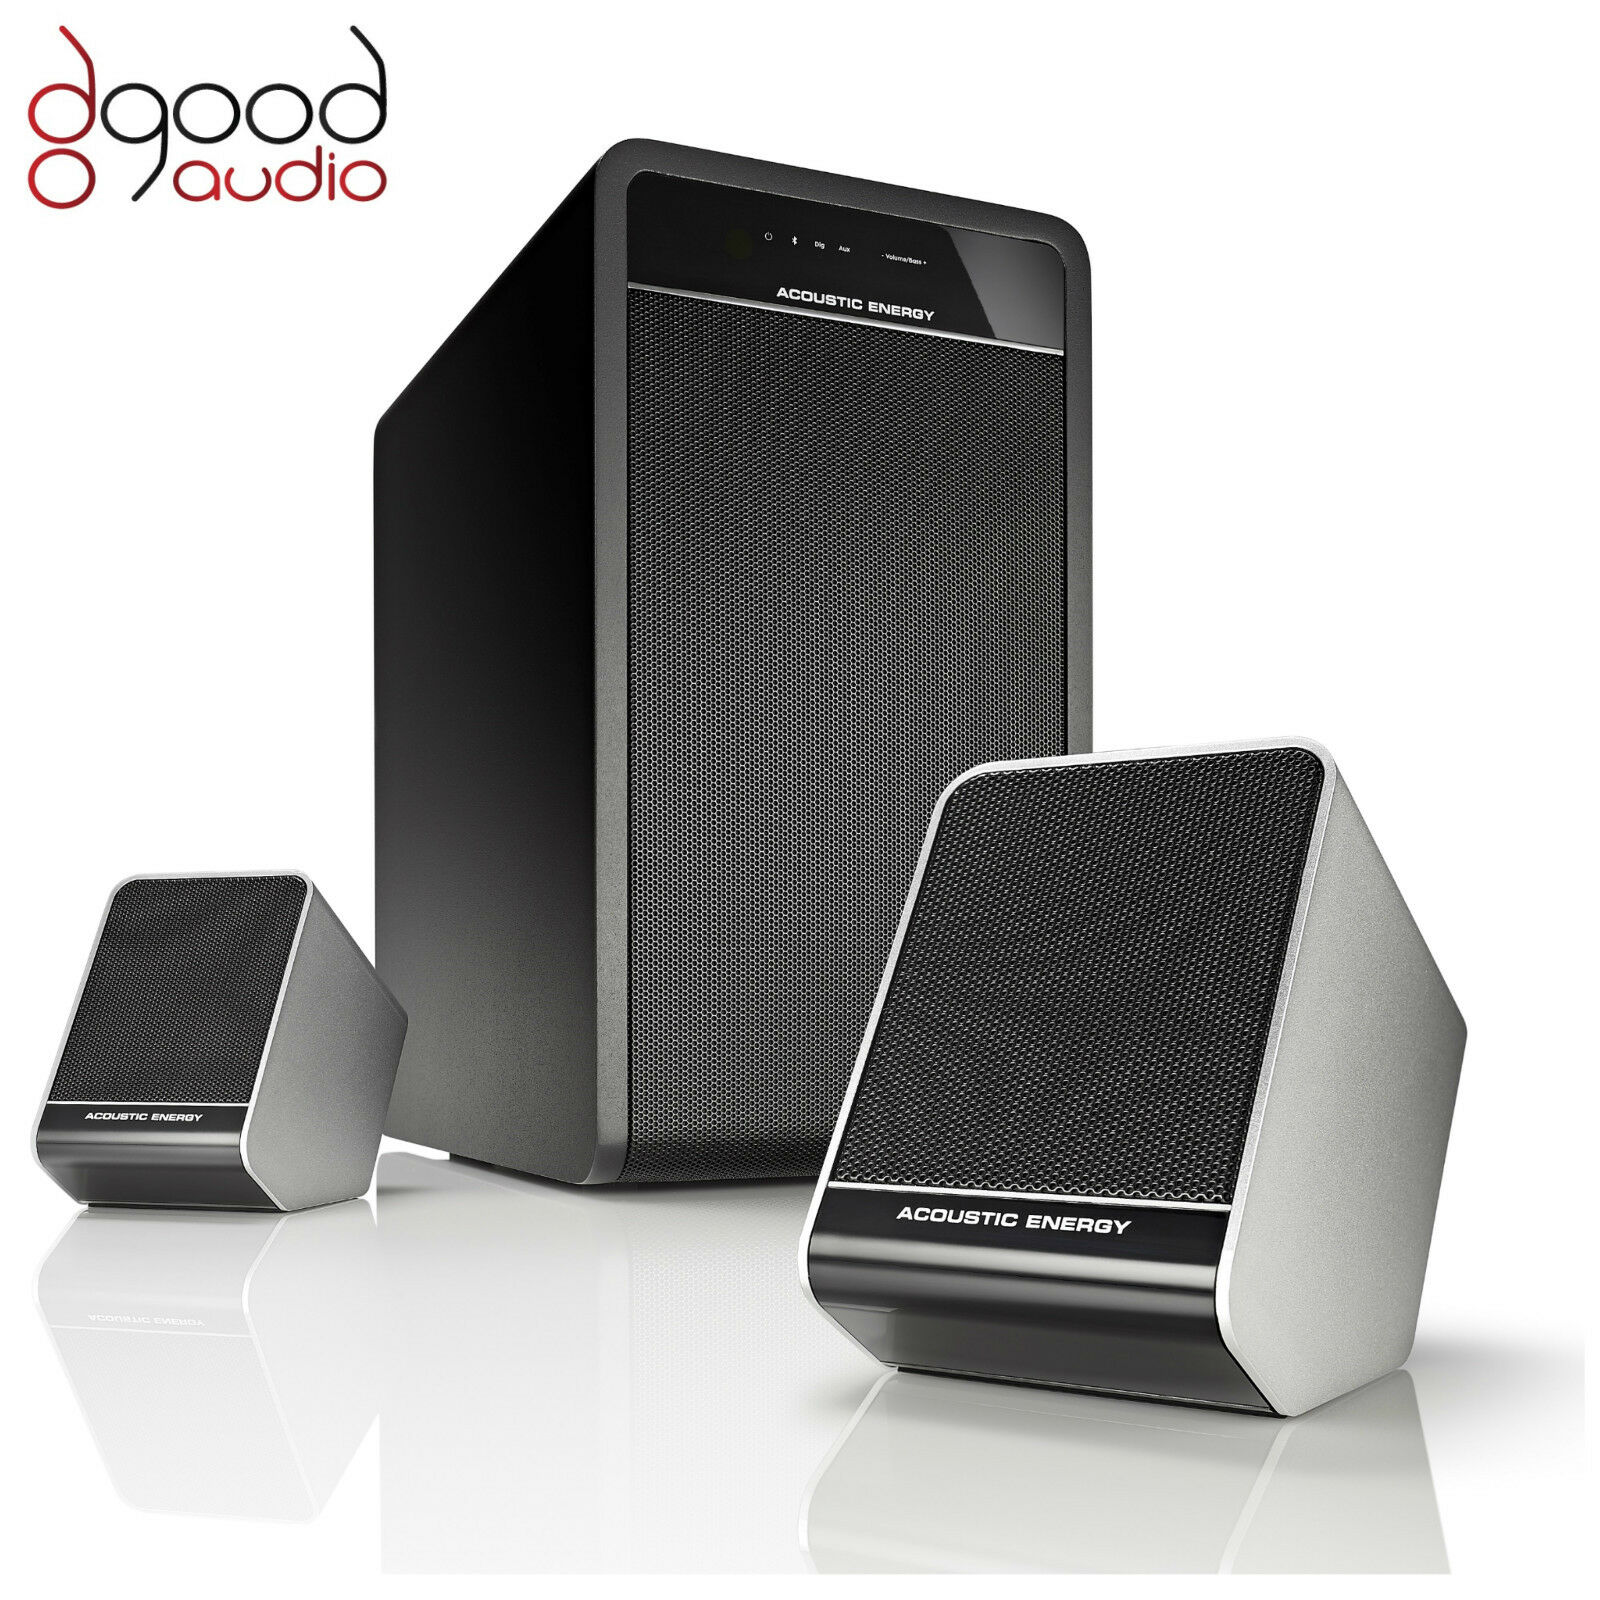 akustisch energie aego 3 aktiv 2 1 bluetooth lautsprecher subwoofer system ebay. Black Bedroom Furniture Sets. Home Design Ideas